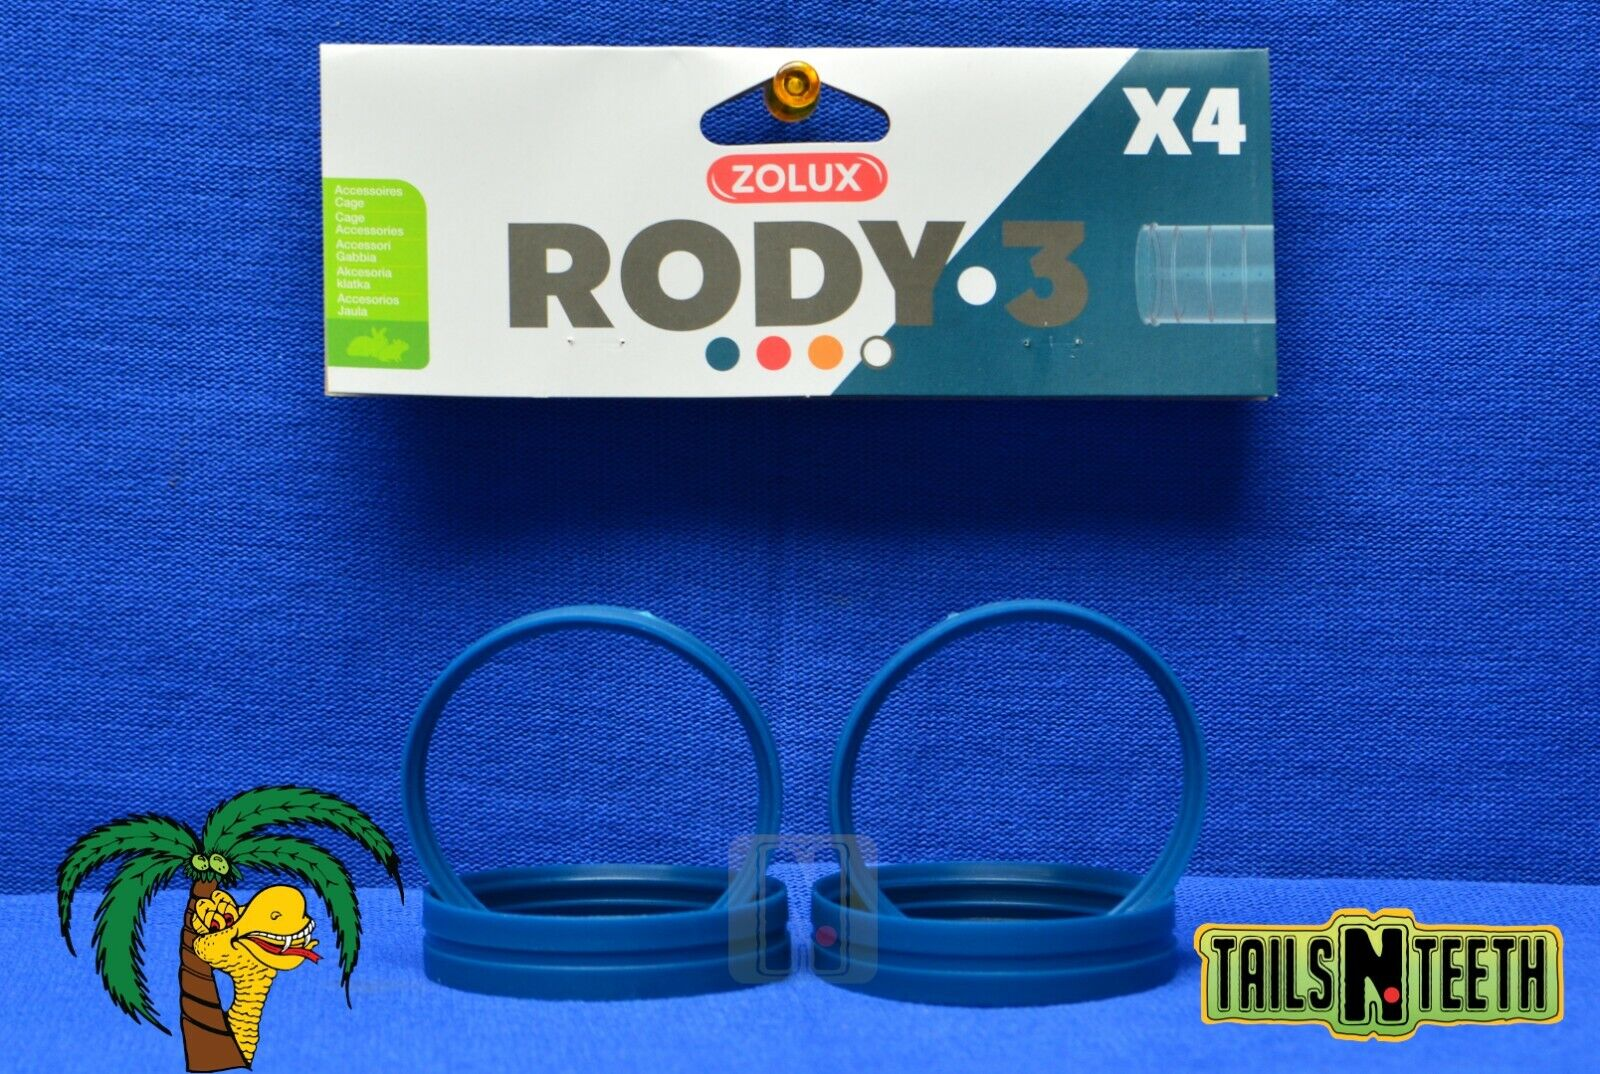 Zolux RODY-3 Connection Rings For Rody-3 InterConnecting Cages - 4 Pack - Blue - CA$3.99